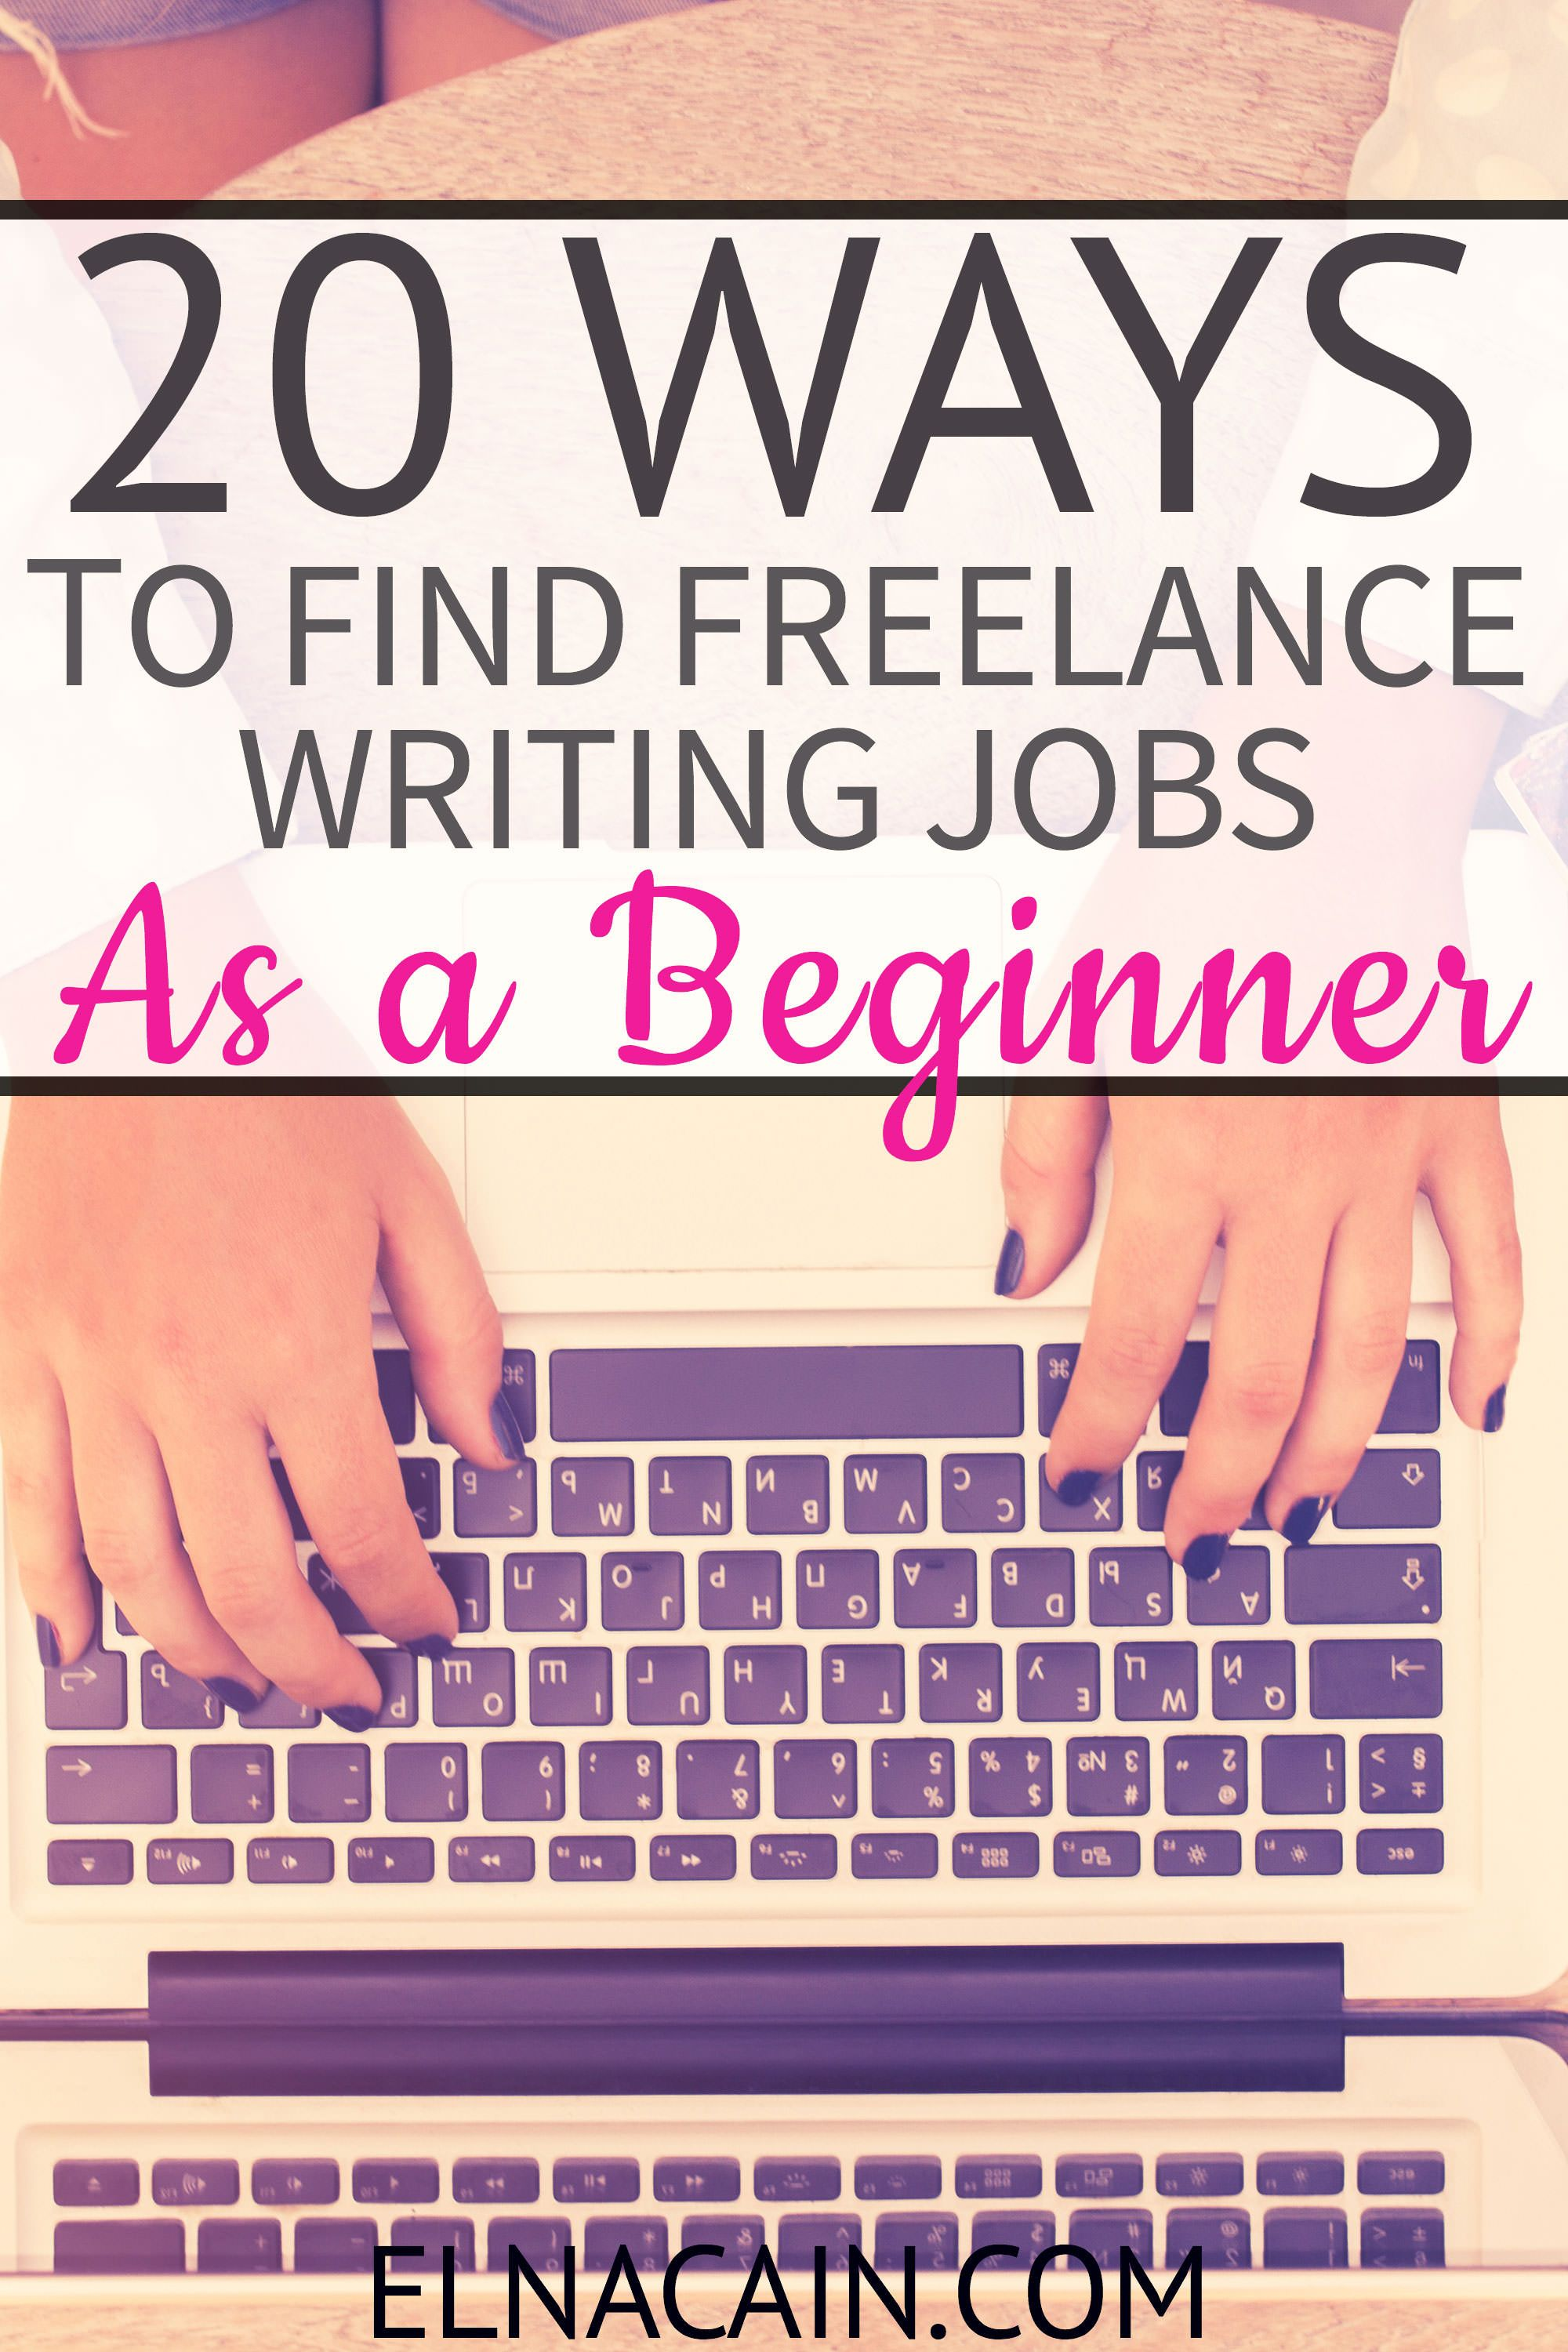 20 Ways To Find Freelance Writing Jobs As A Beginner Elna Cain Freelance Writing Jobs Make Money Writing Freelance Writing